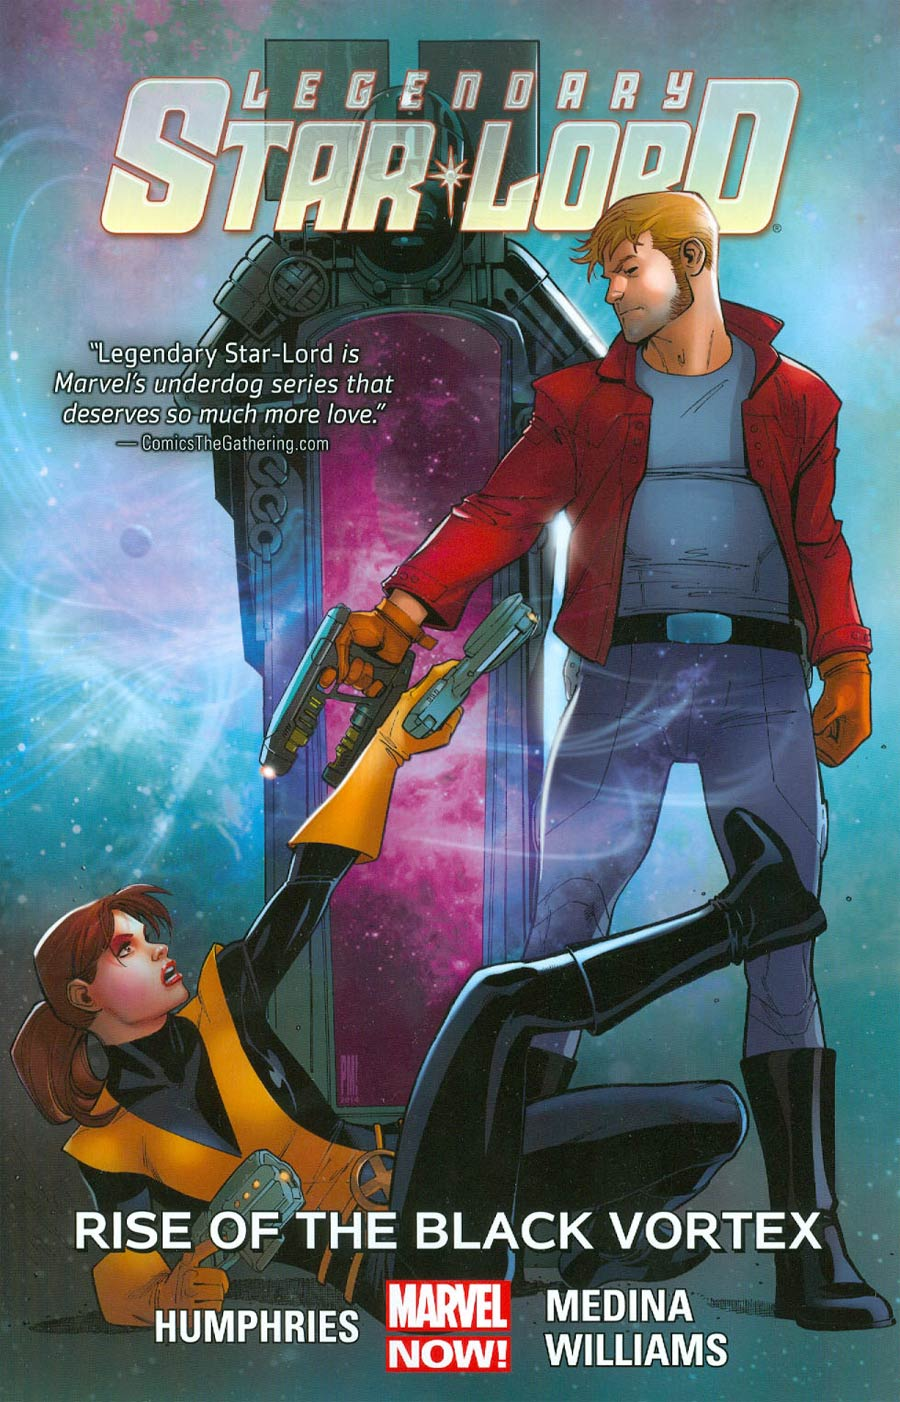 Legendary Star-Lord Vol 2 Rise Of The Black Vortex TP